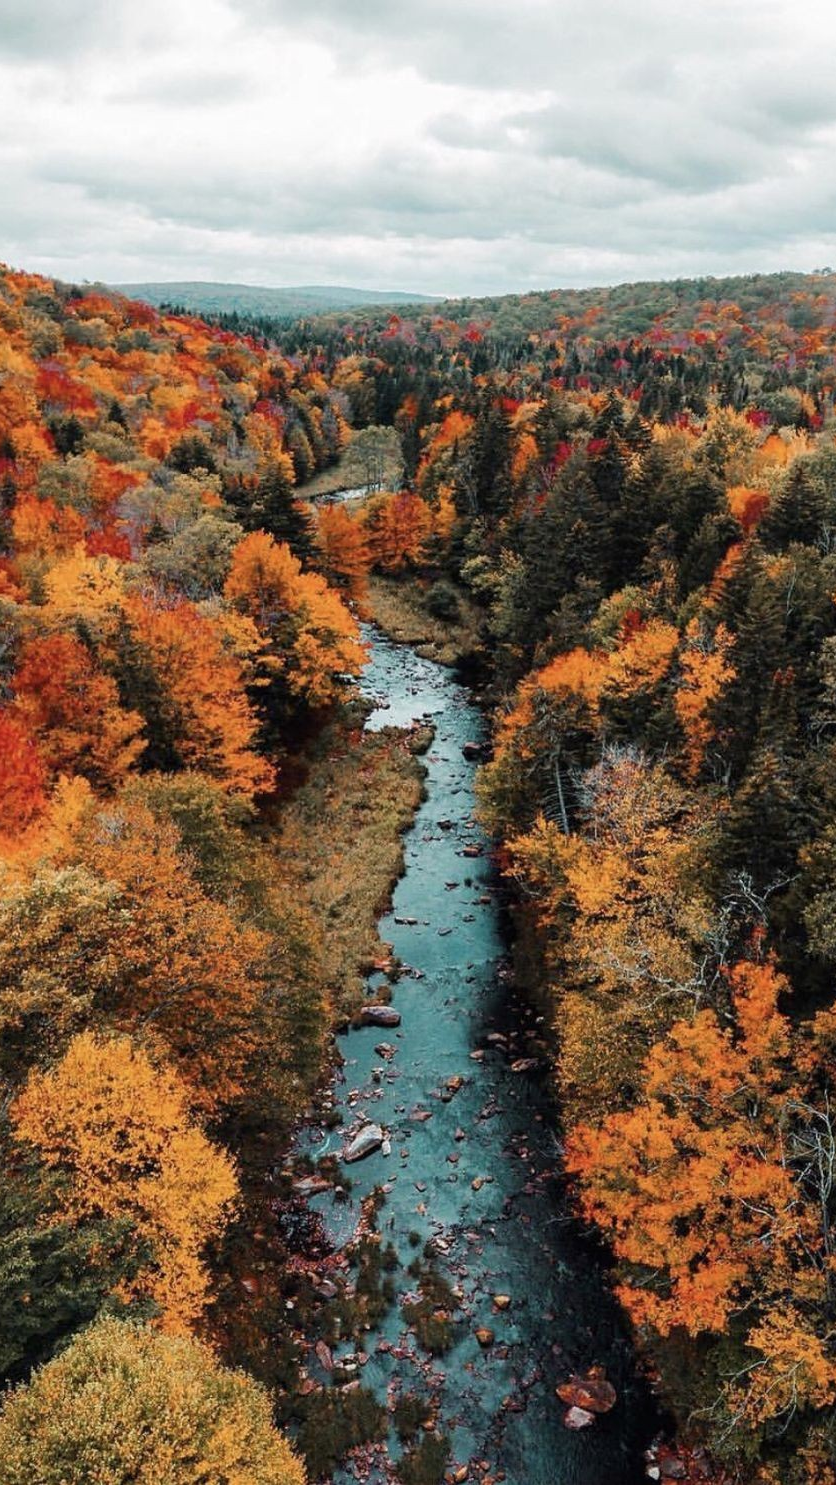 New The Most Good Looking Fall Lock Screen for iPhone 11